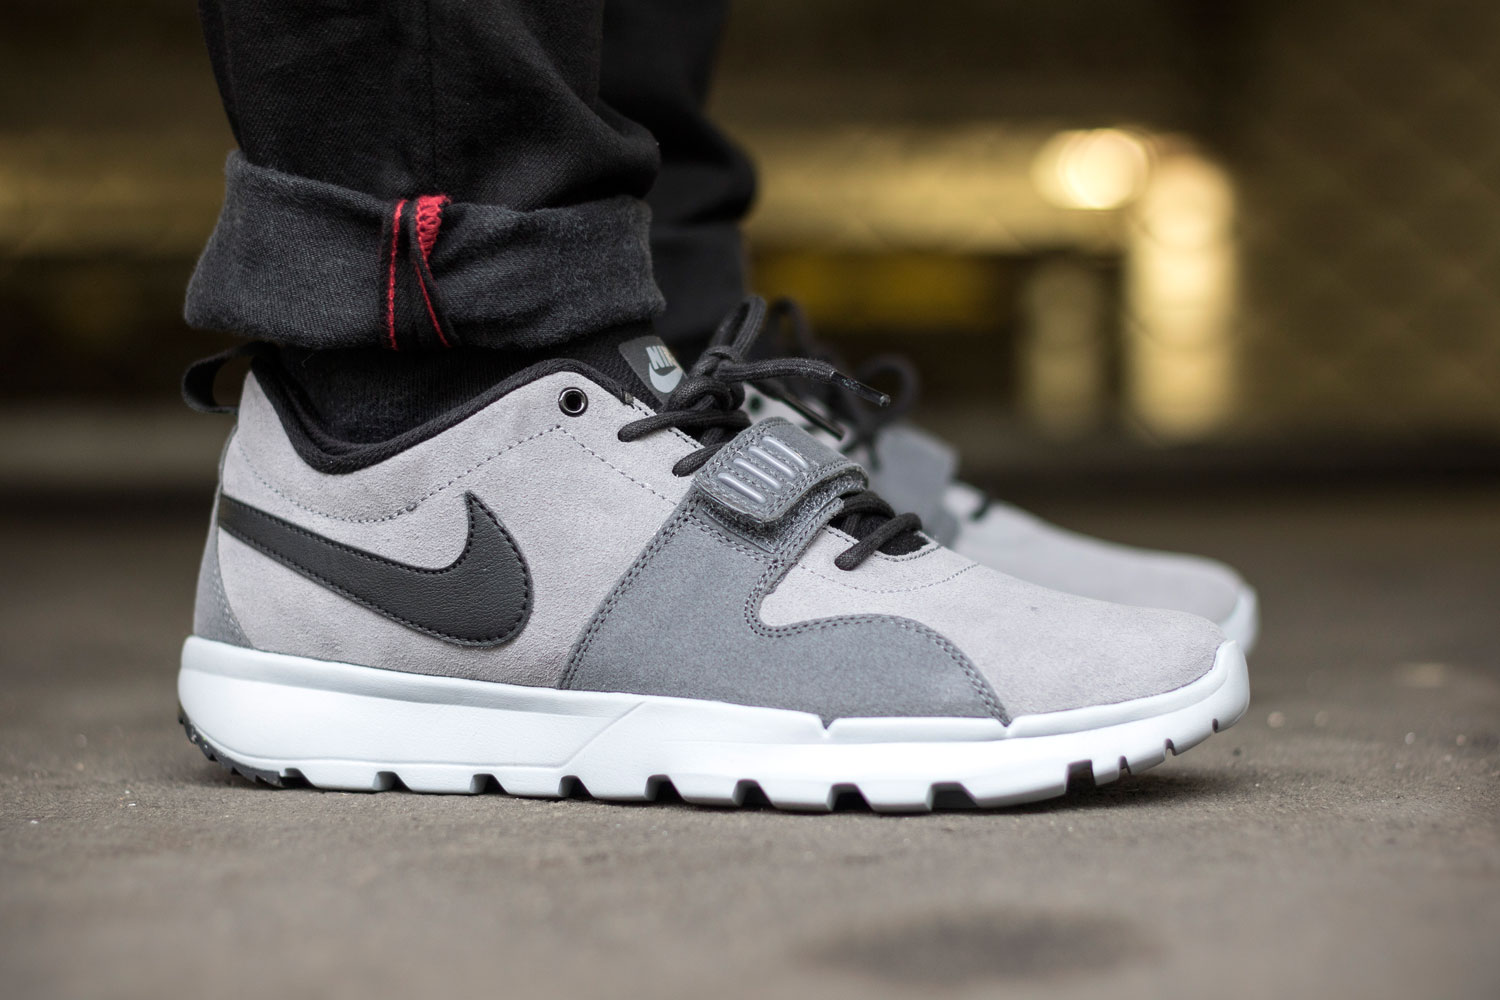 cheaper ae3a4 6bcf0 Nike SB Trainerendor Cool Grey